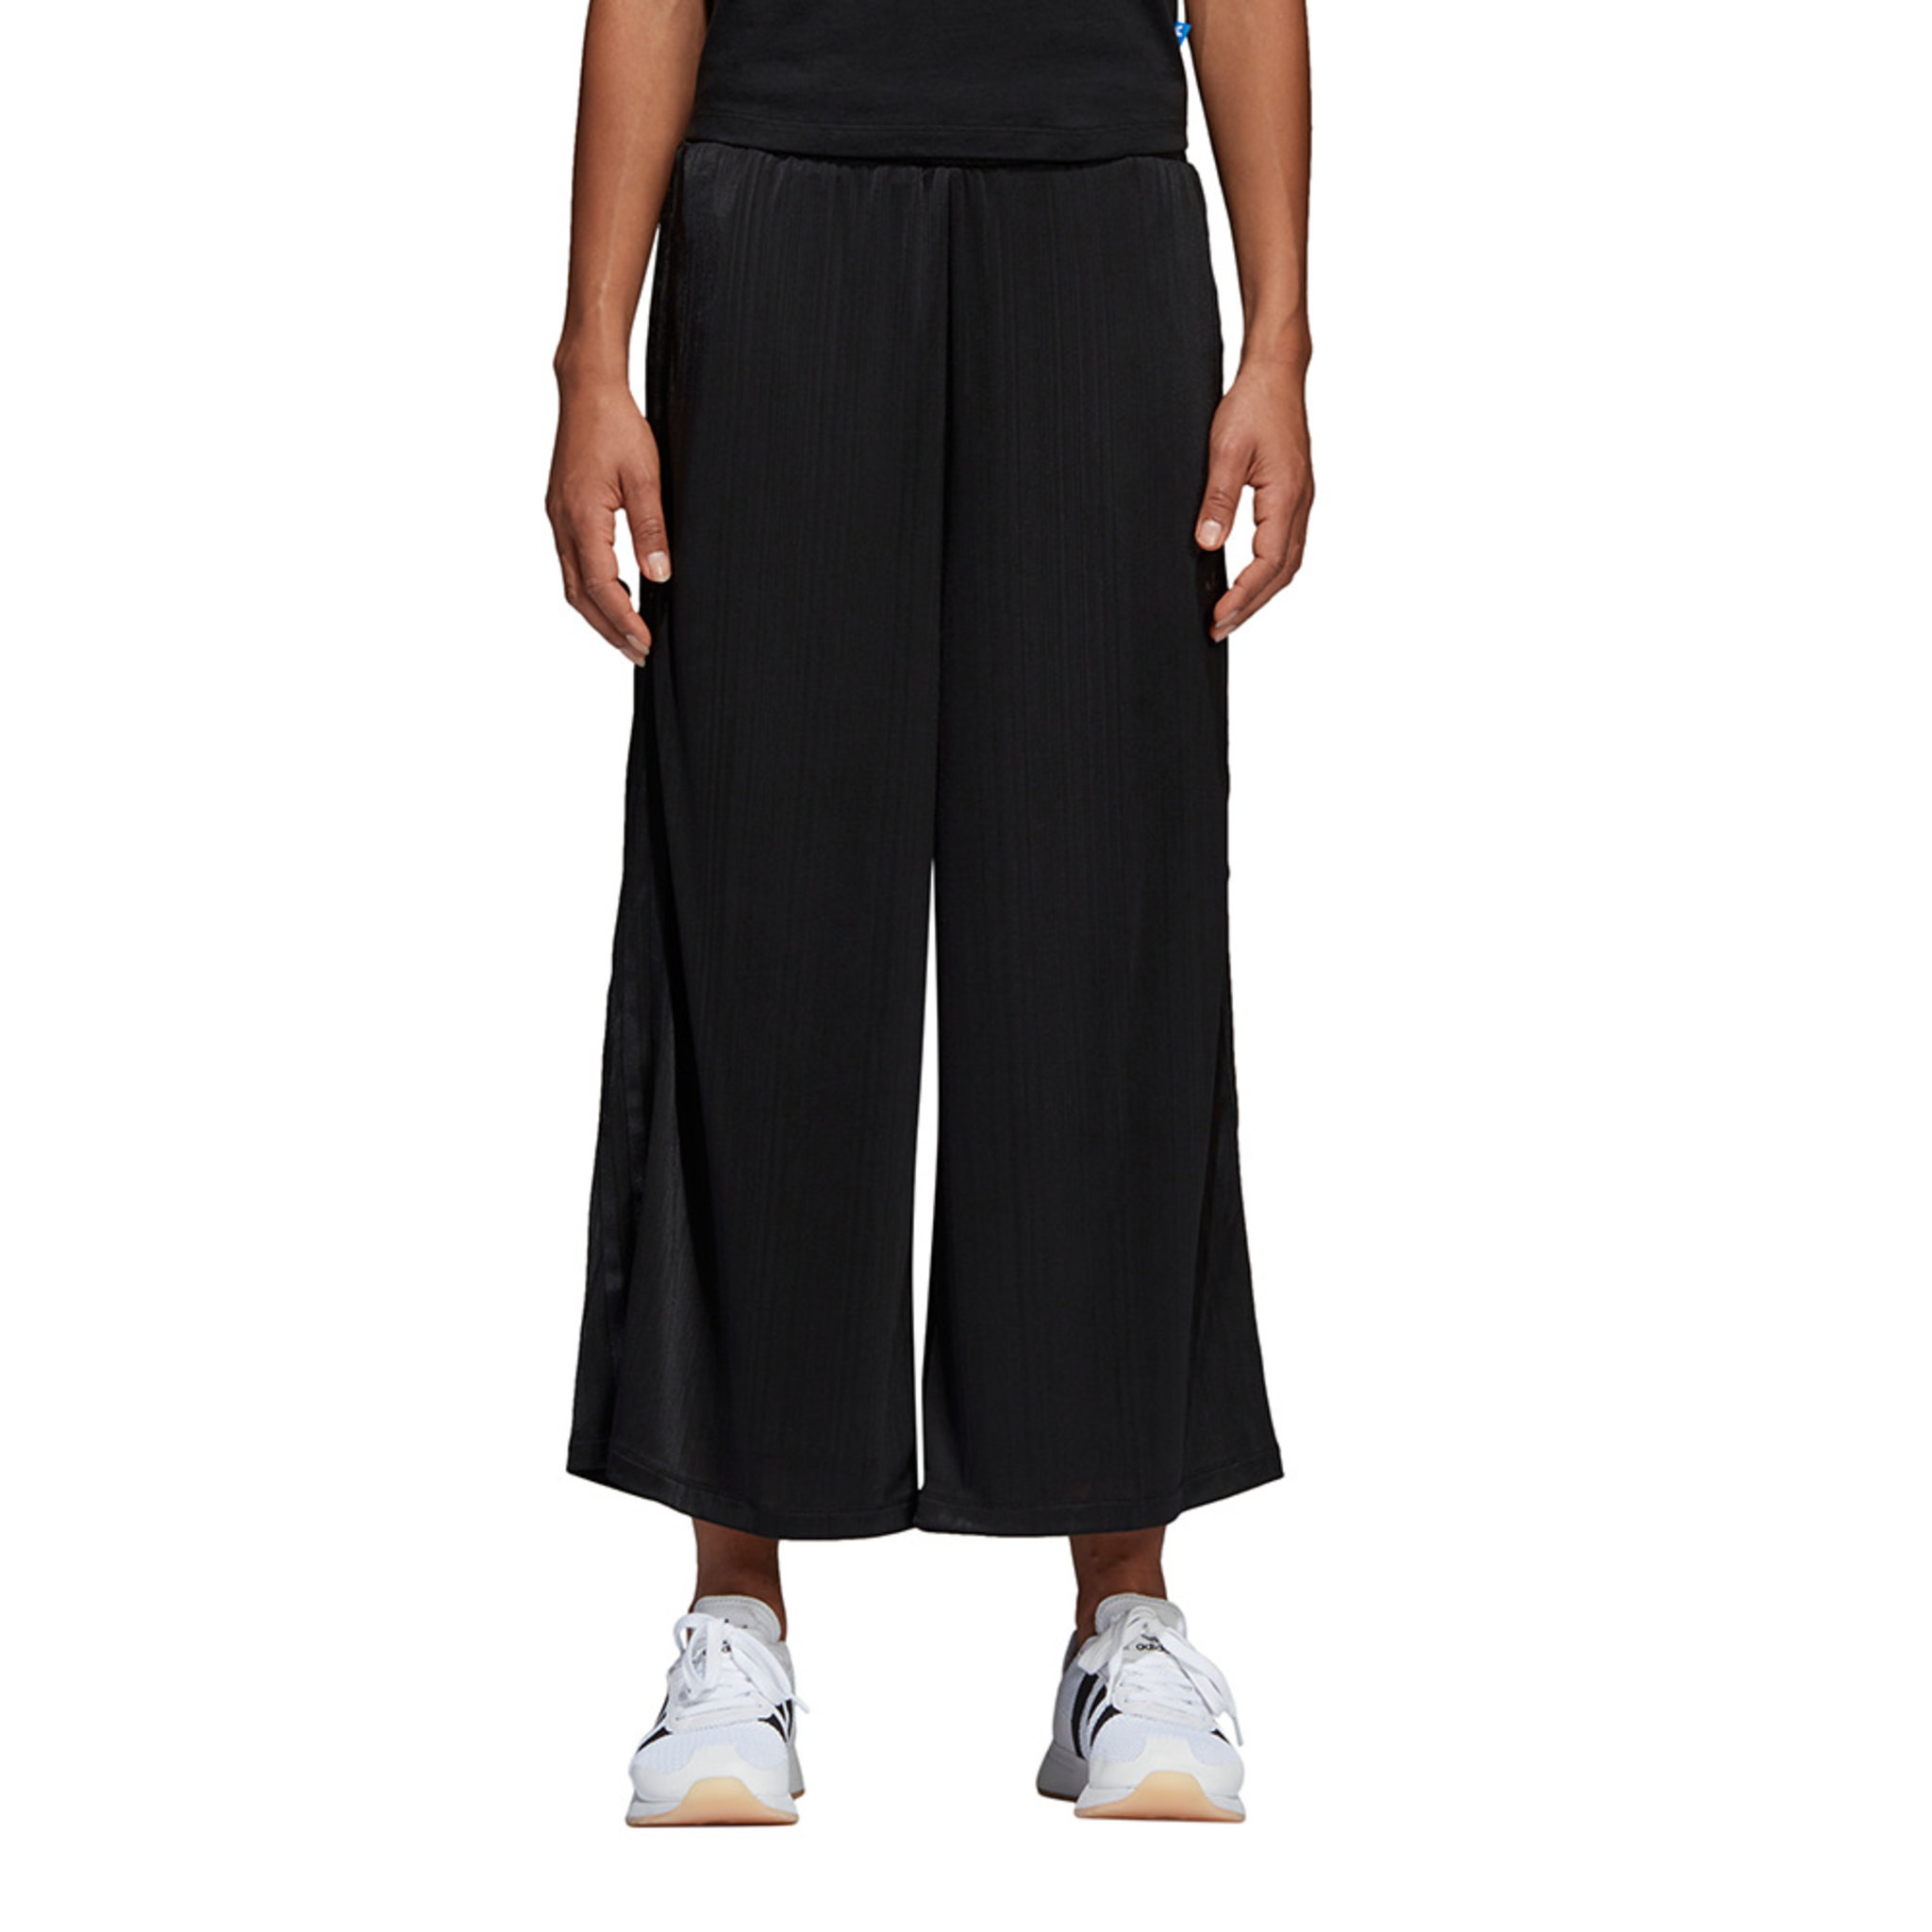 Styling Complements Ribbed Pants